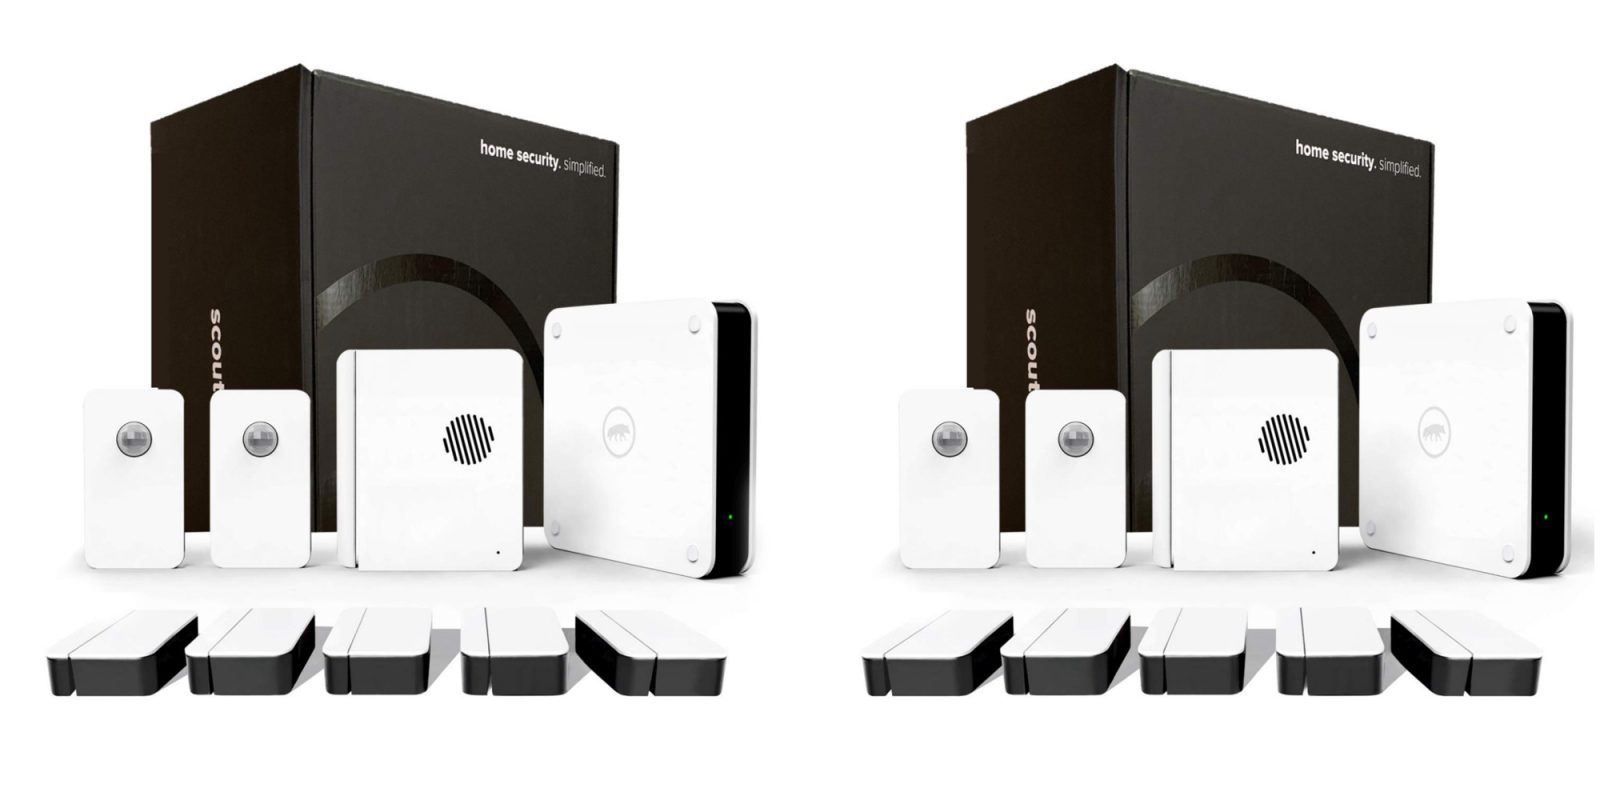 The Scout Wireless Home Security System is $134 off in today's Gold Box, more